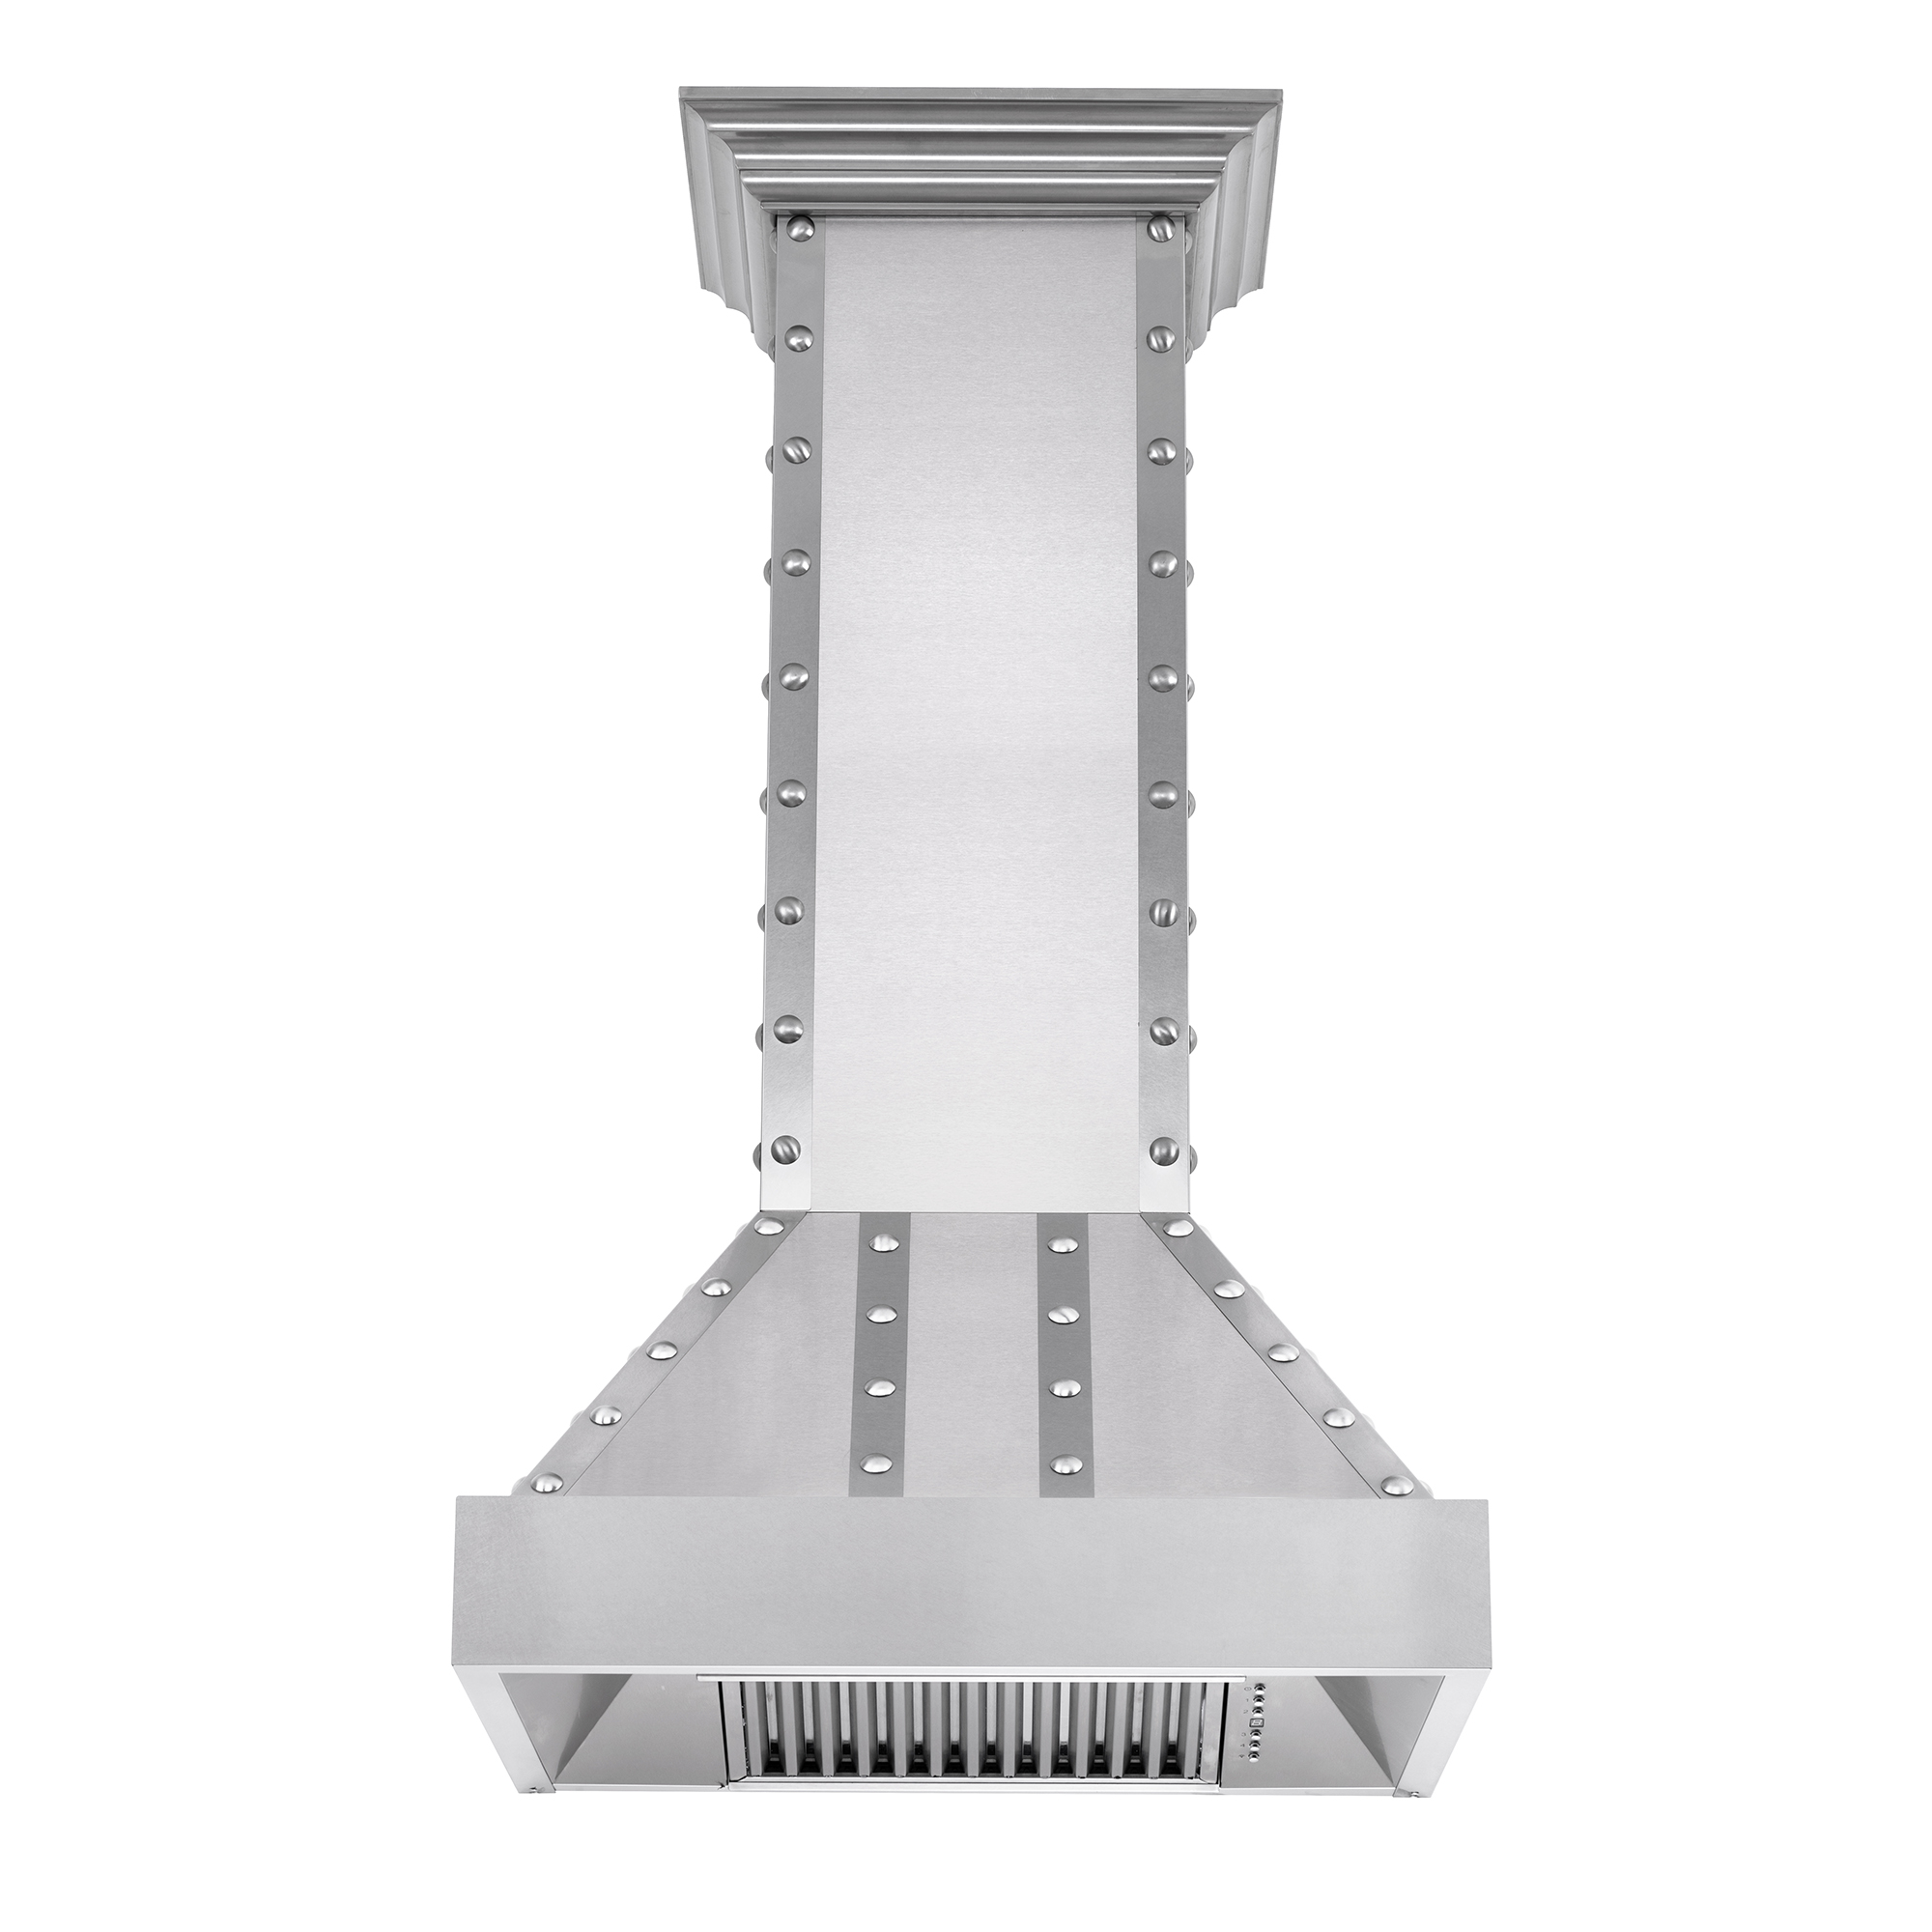 zline-stainless-steel-wall-mounted-range-hood-655-4SSSS-front-under.jpg